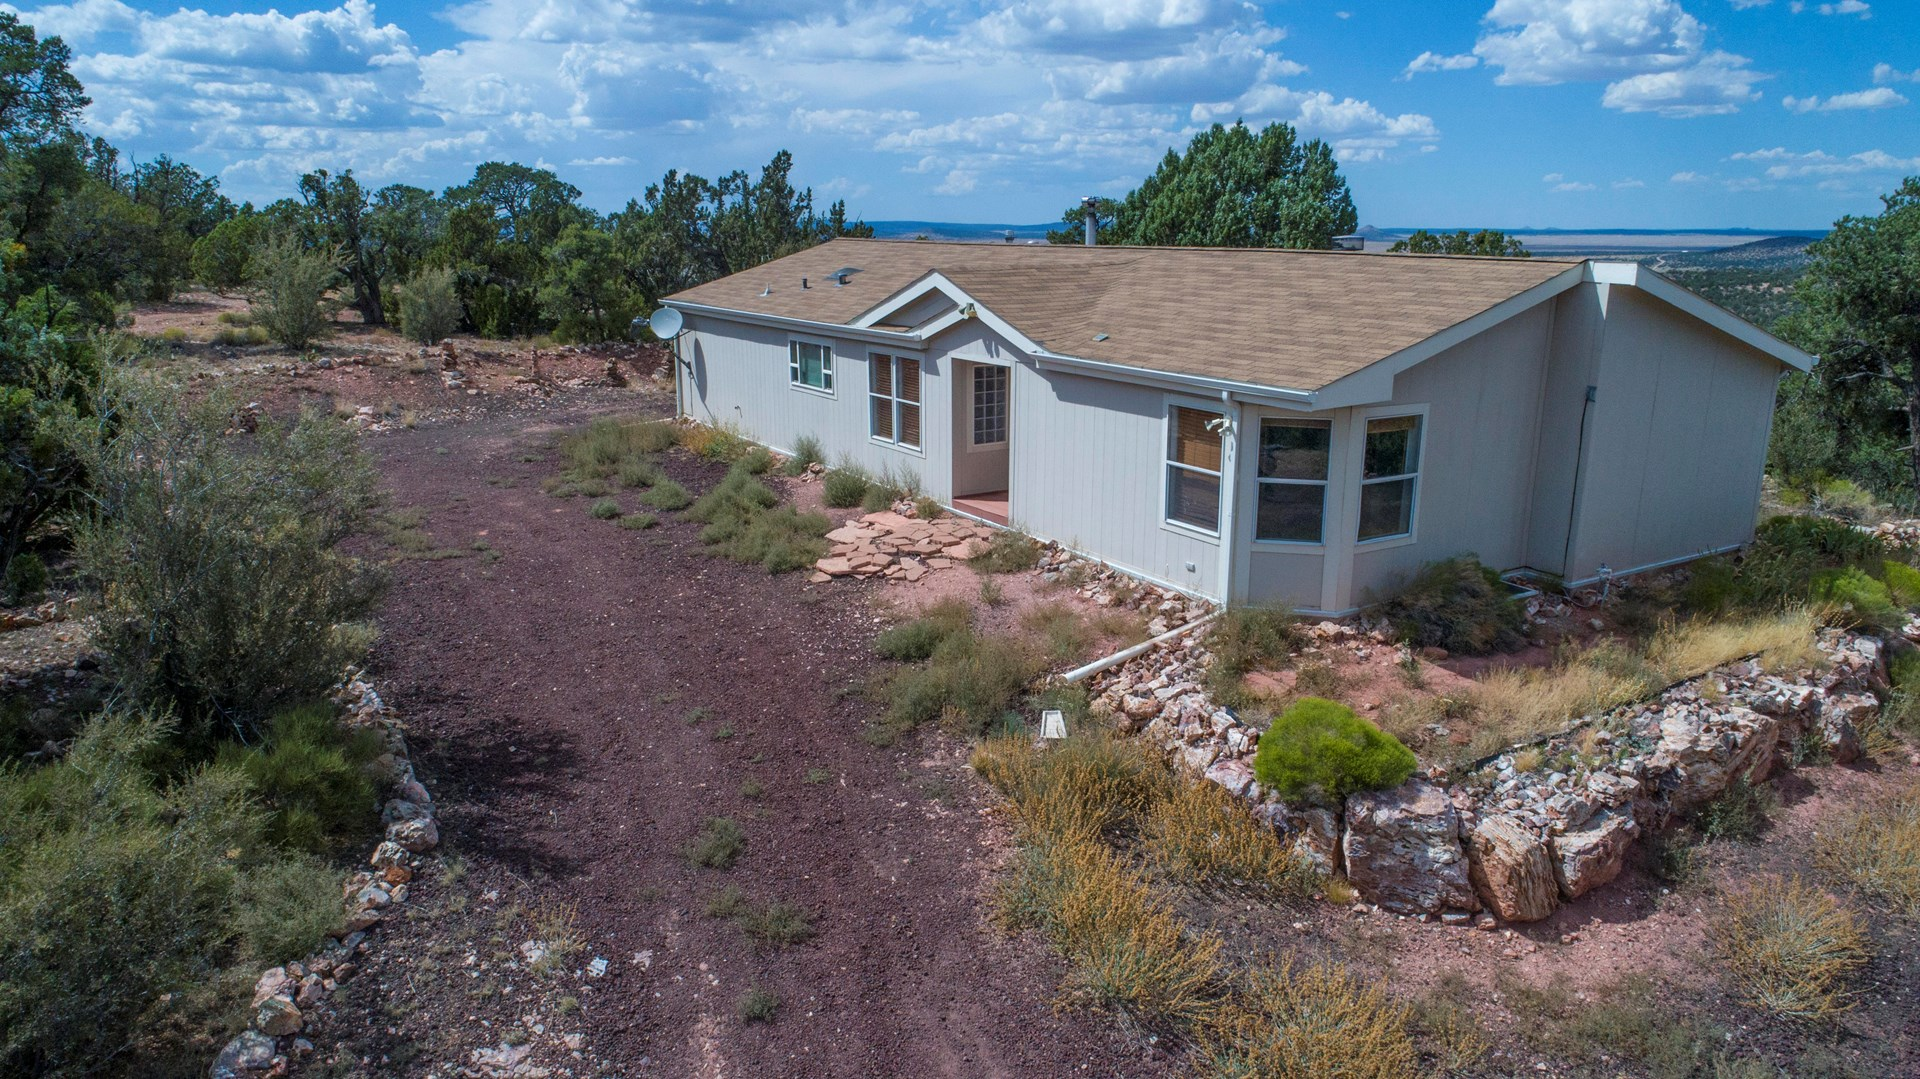 Seligman AZ Solar Country Home